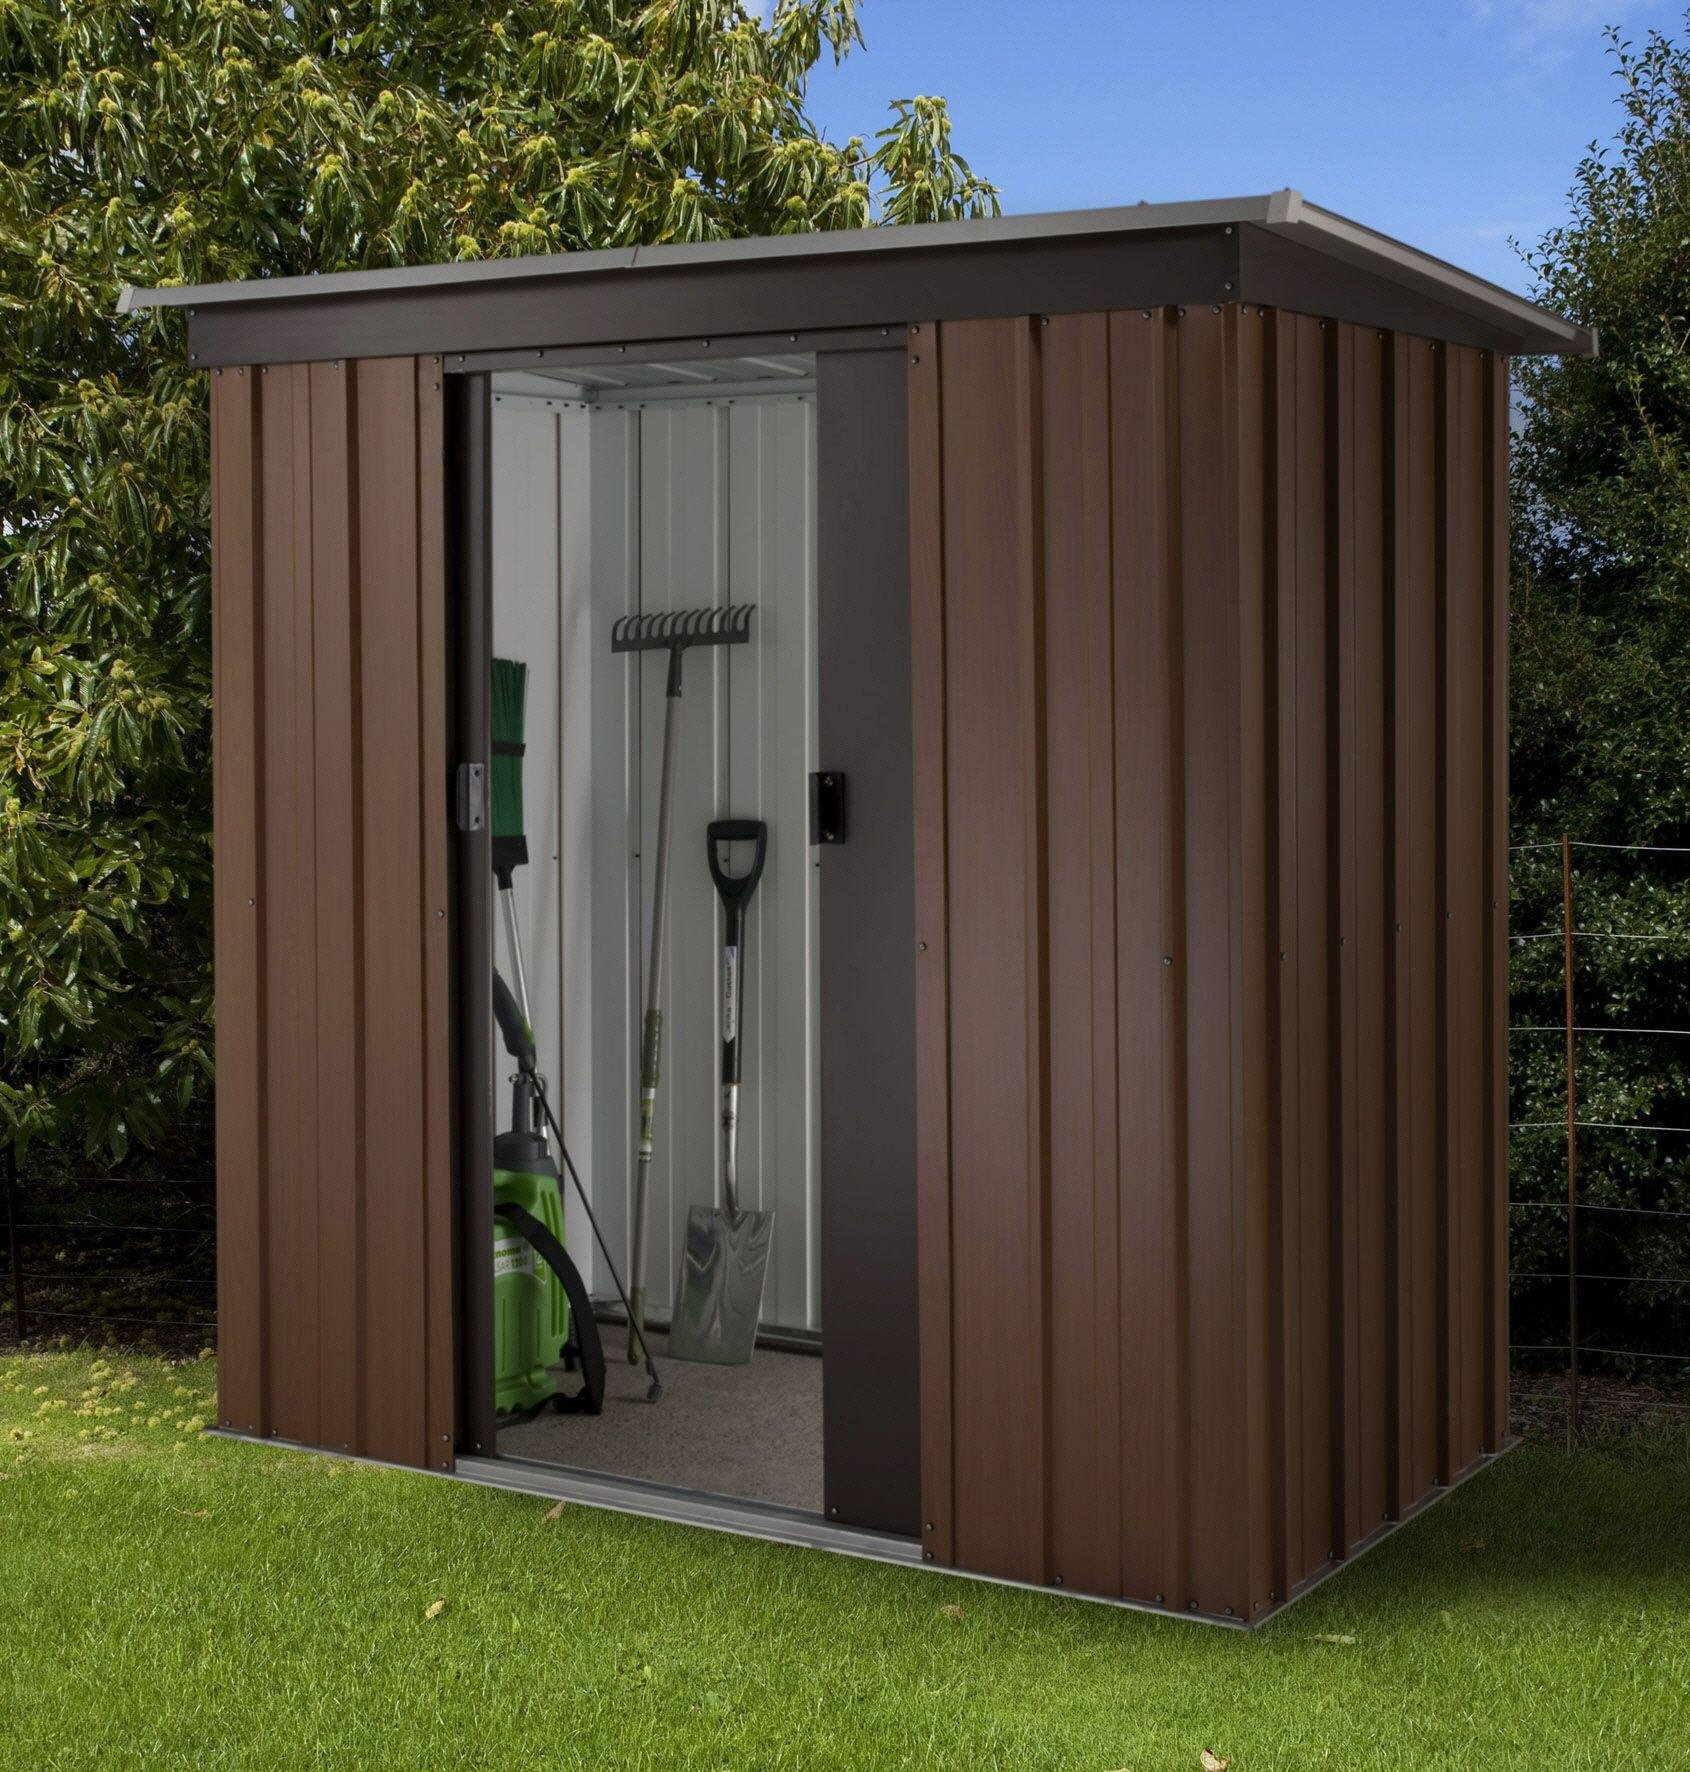 Image of Yardmaster Woodgrain Tall Metal Shed - 7 x 4ft